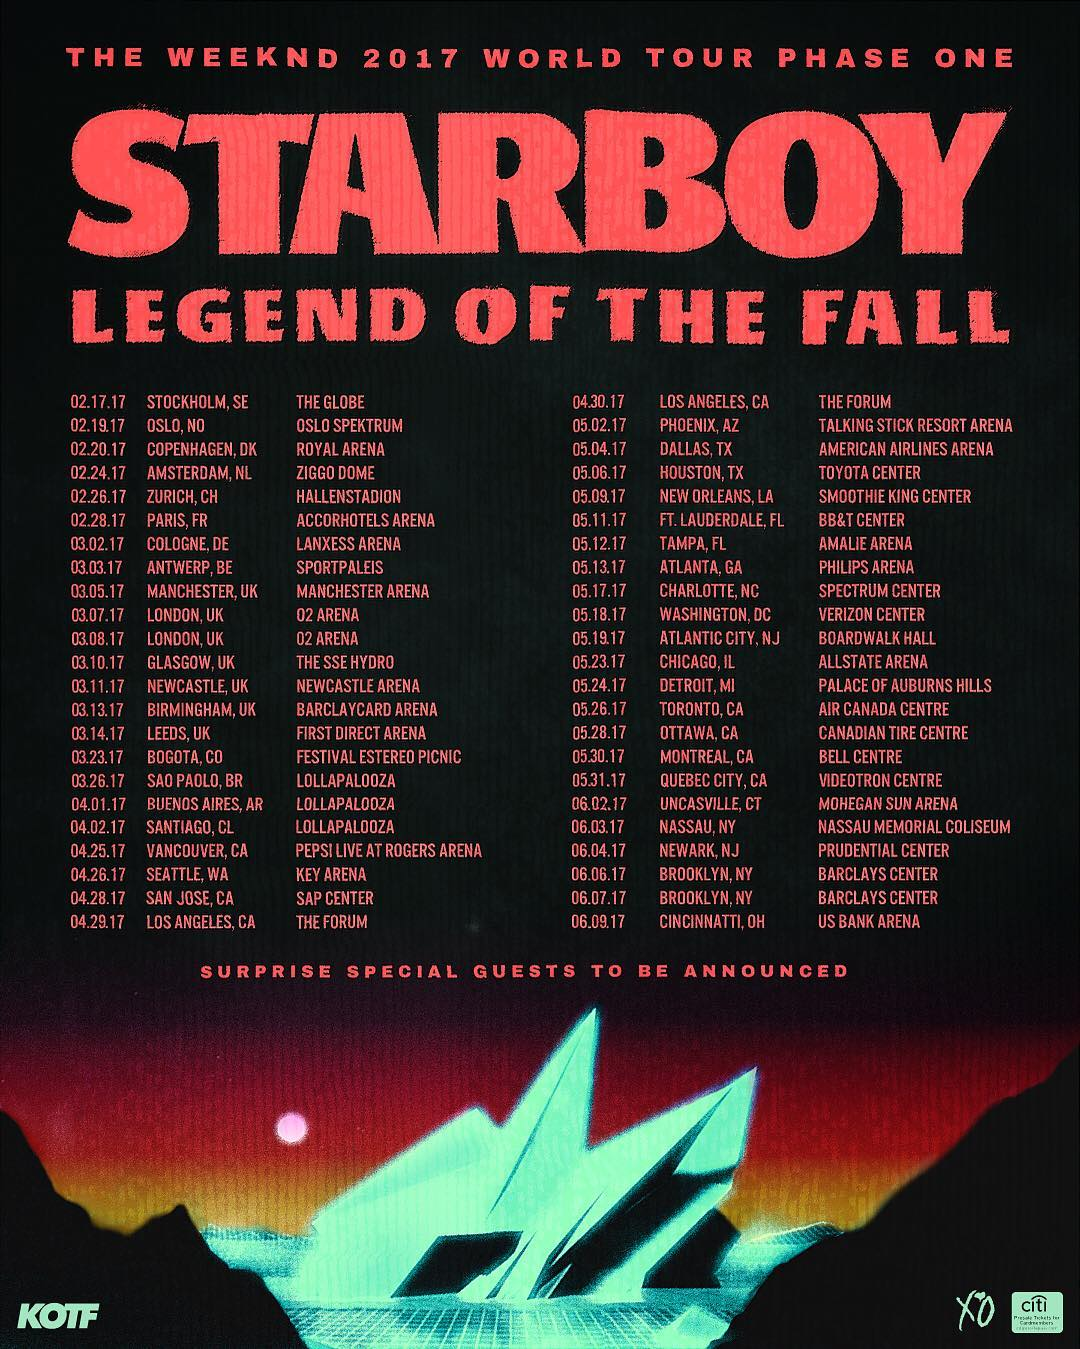 Legend Of The Fall Tour Wallpaper The Weeknd Announces Starboy Legend Of The Fall Tour